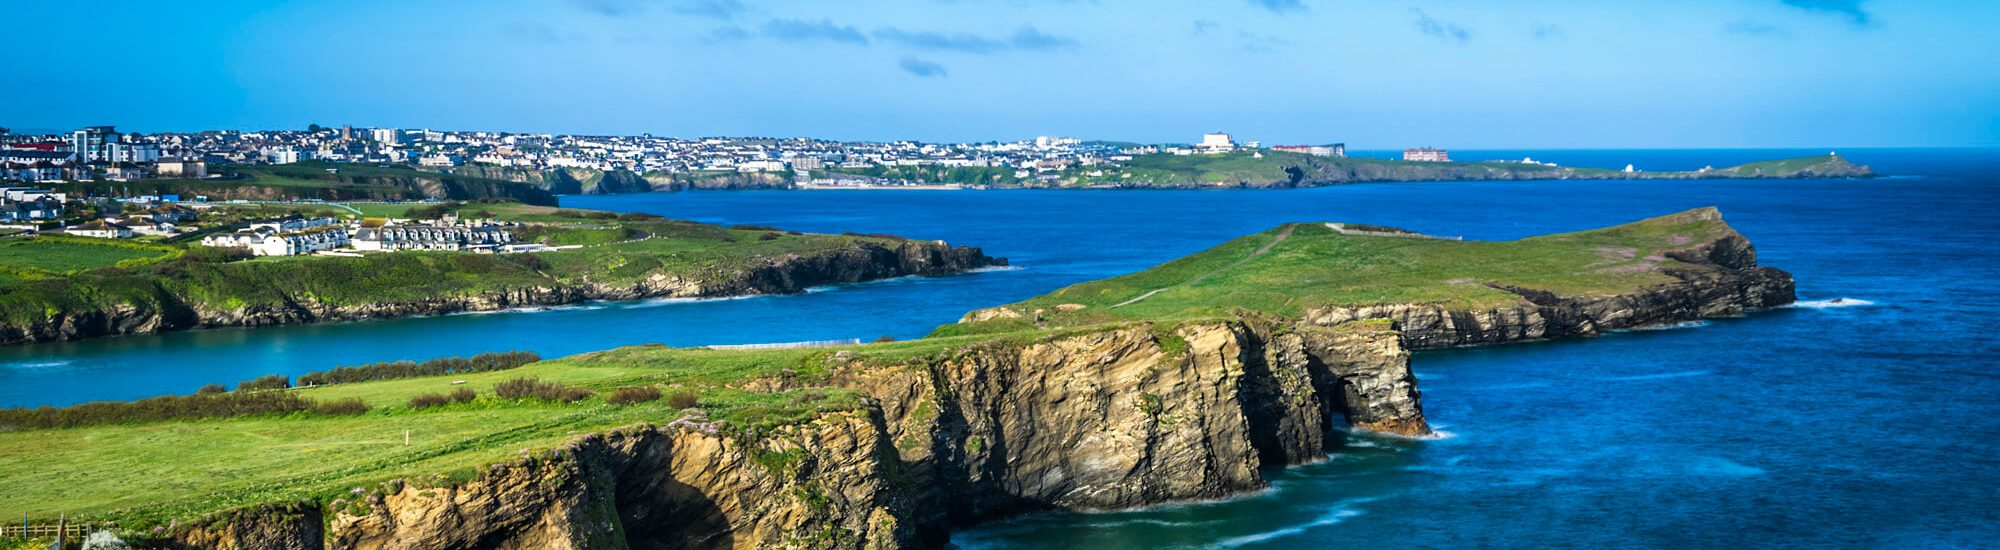 kenton location newquay porth 2000x550 - Location